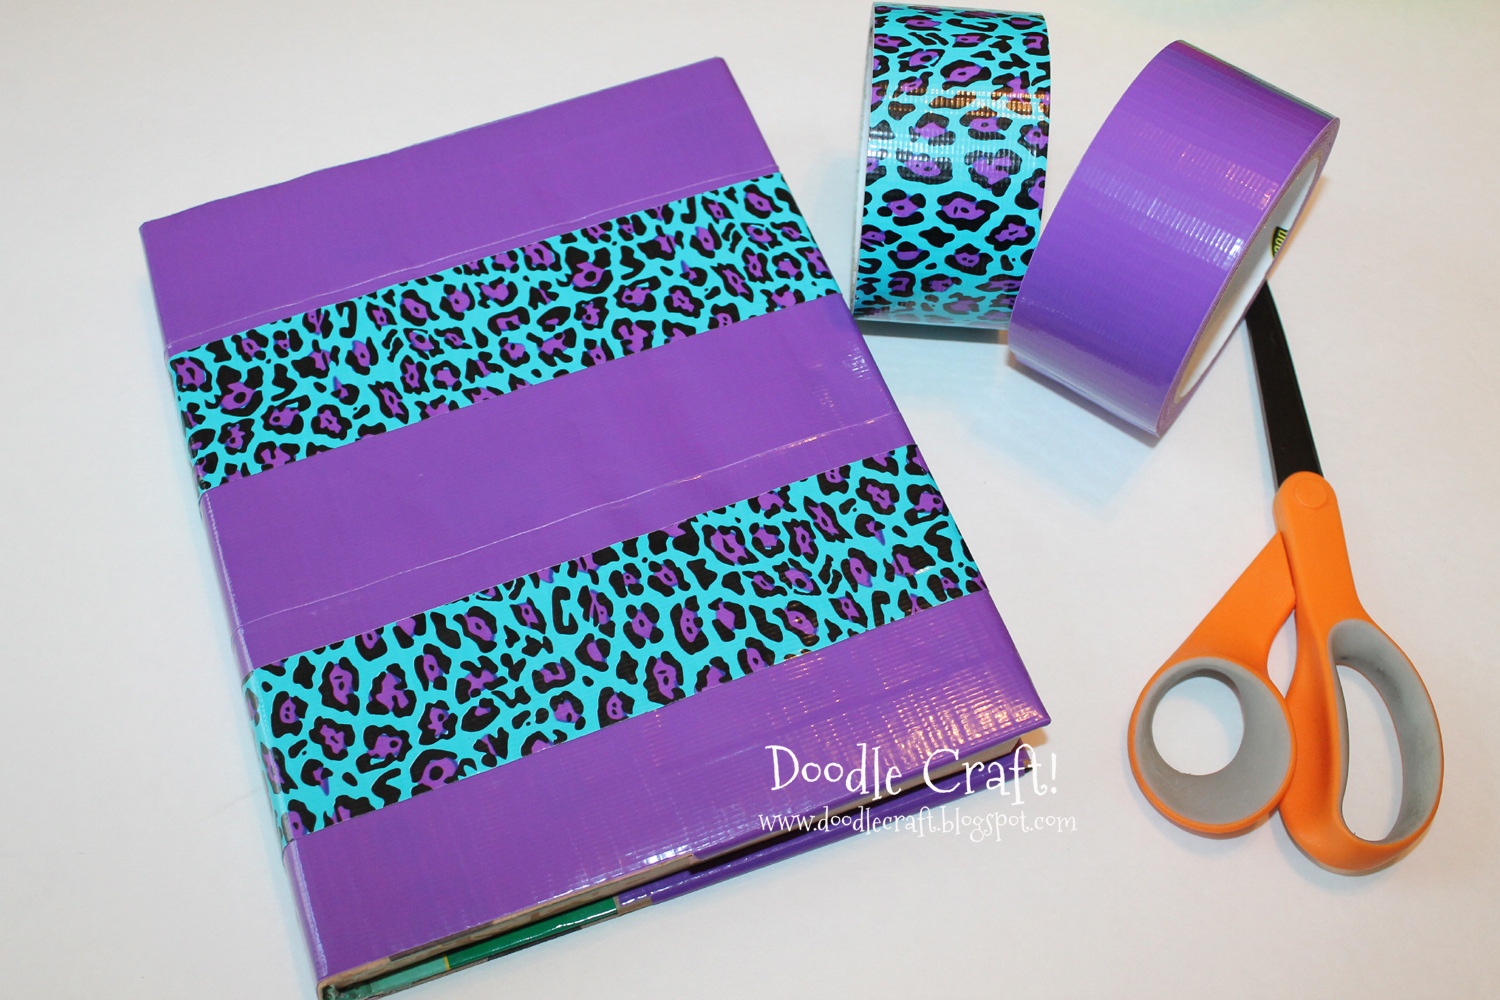 Doodlecraft how to cover a textbook with duct tape how to cover a textbook with duct tape jeuxipadfo Choice Image